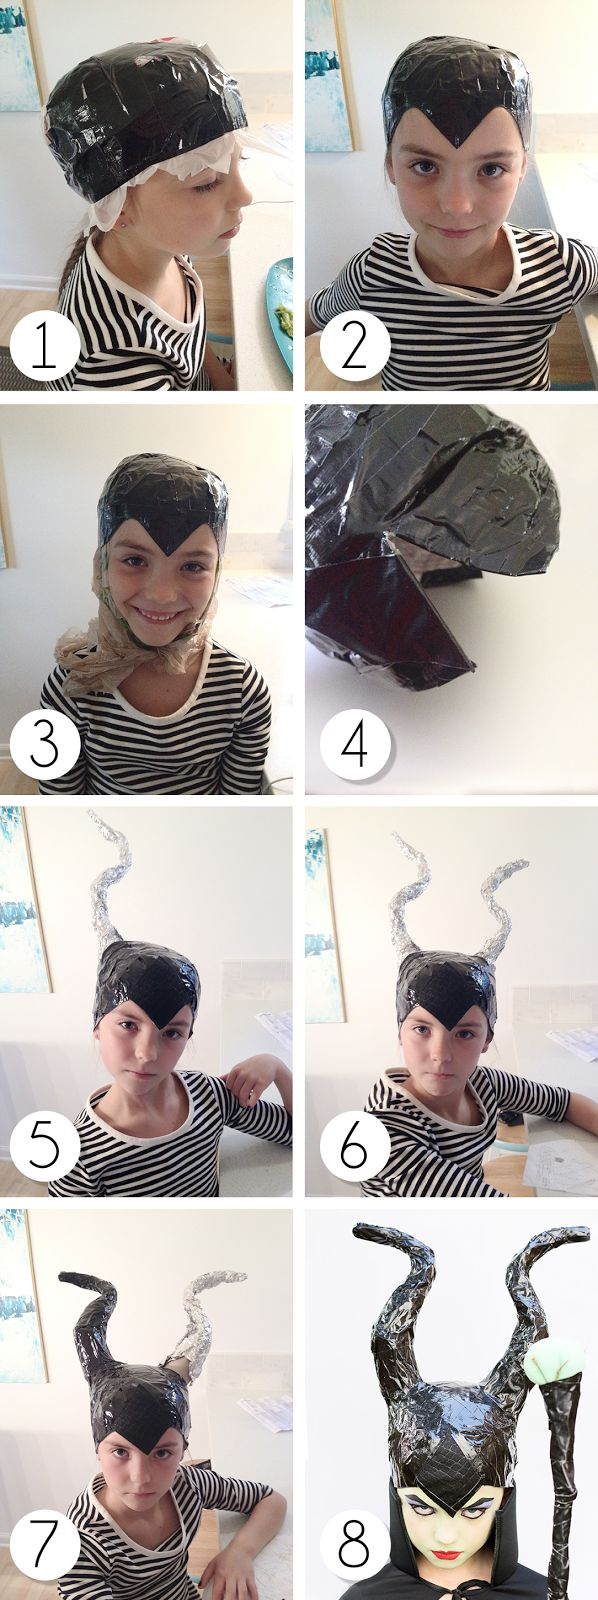 DIY Maleficent Costume |Cuckoo 4 Design :: I can't wait to have kids so they can have the most bad ass costumes around!!!